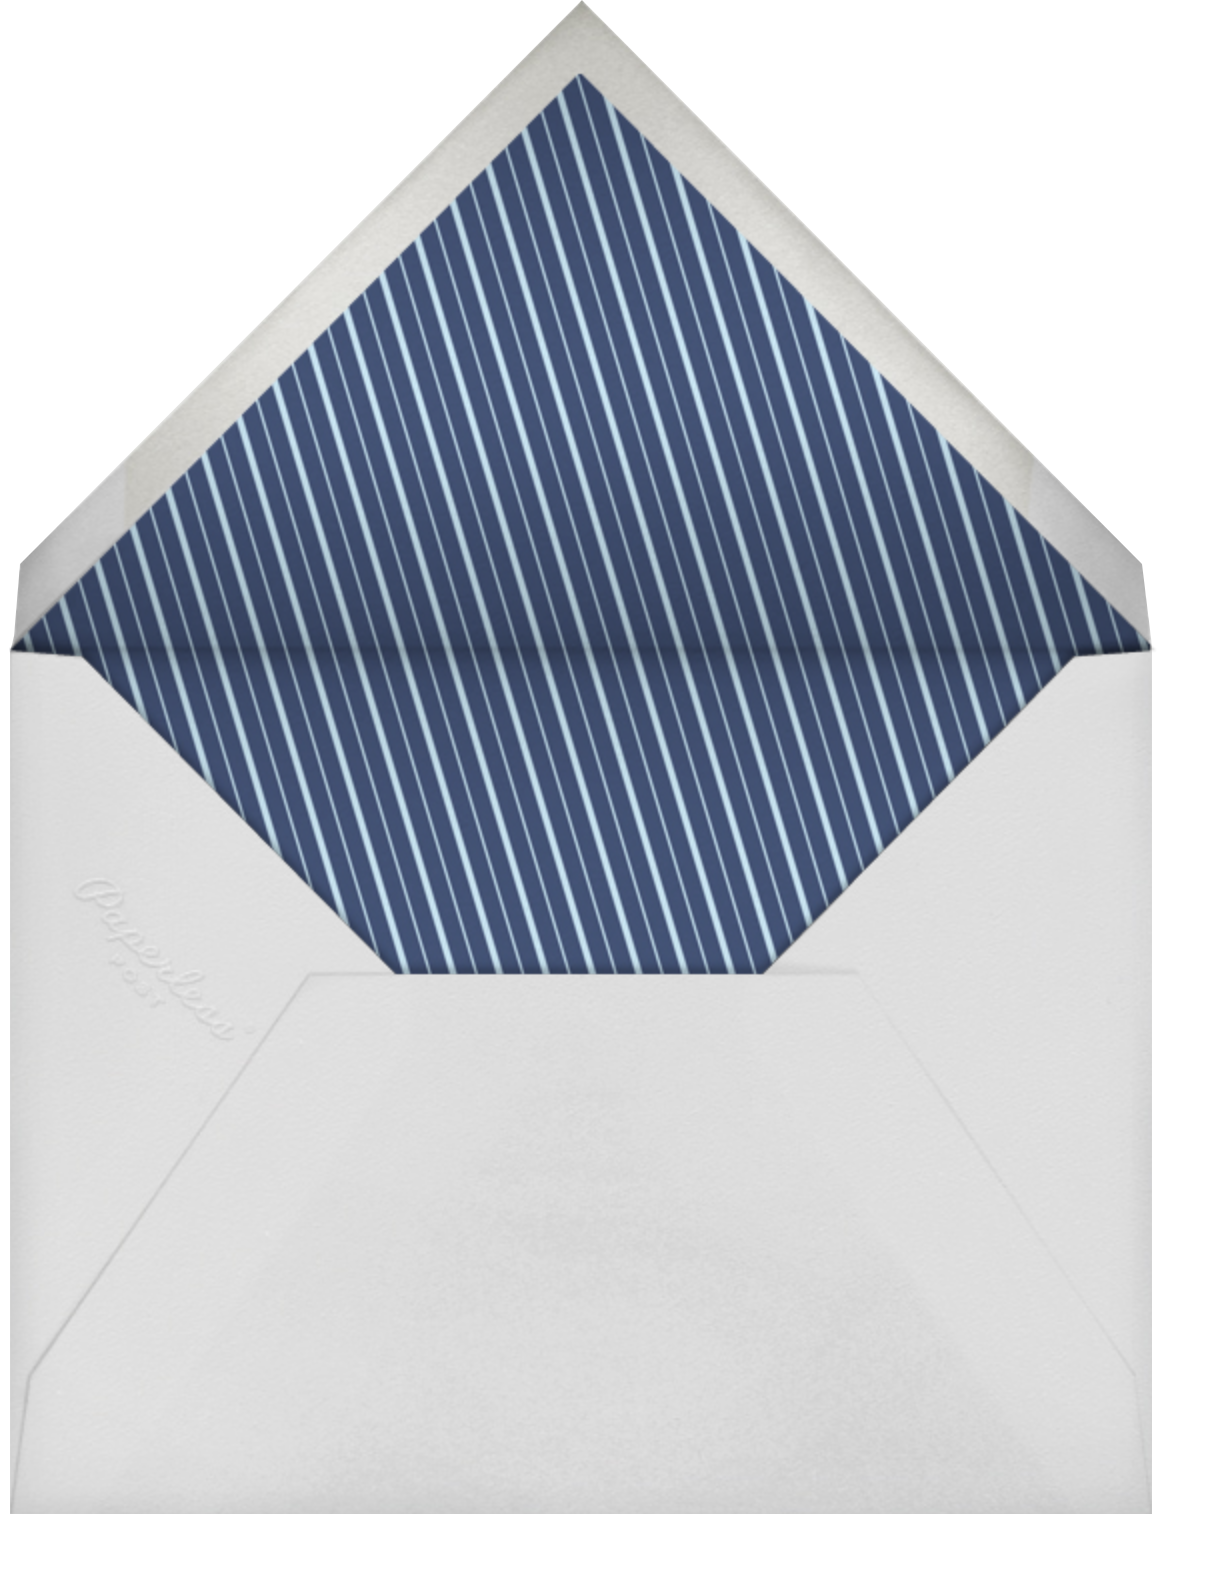 Forsythia - Midnight with White - Paperless Post - General entertaining - envelope back